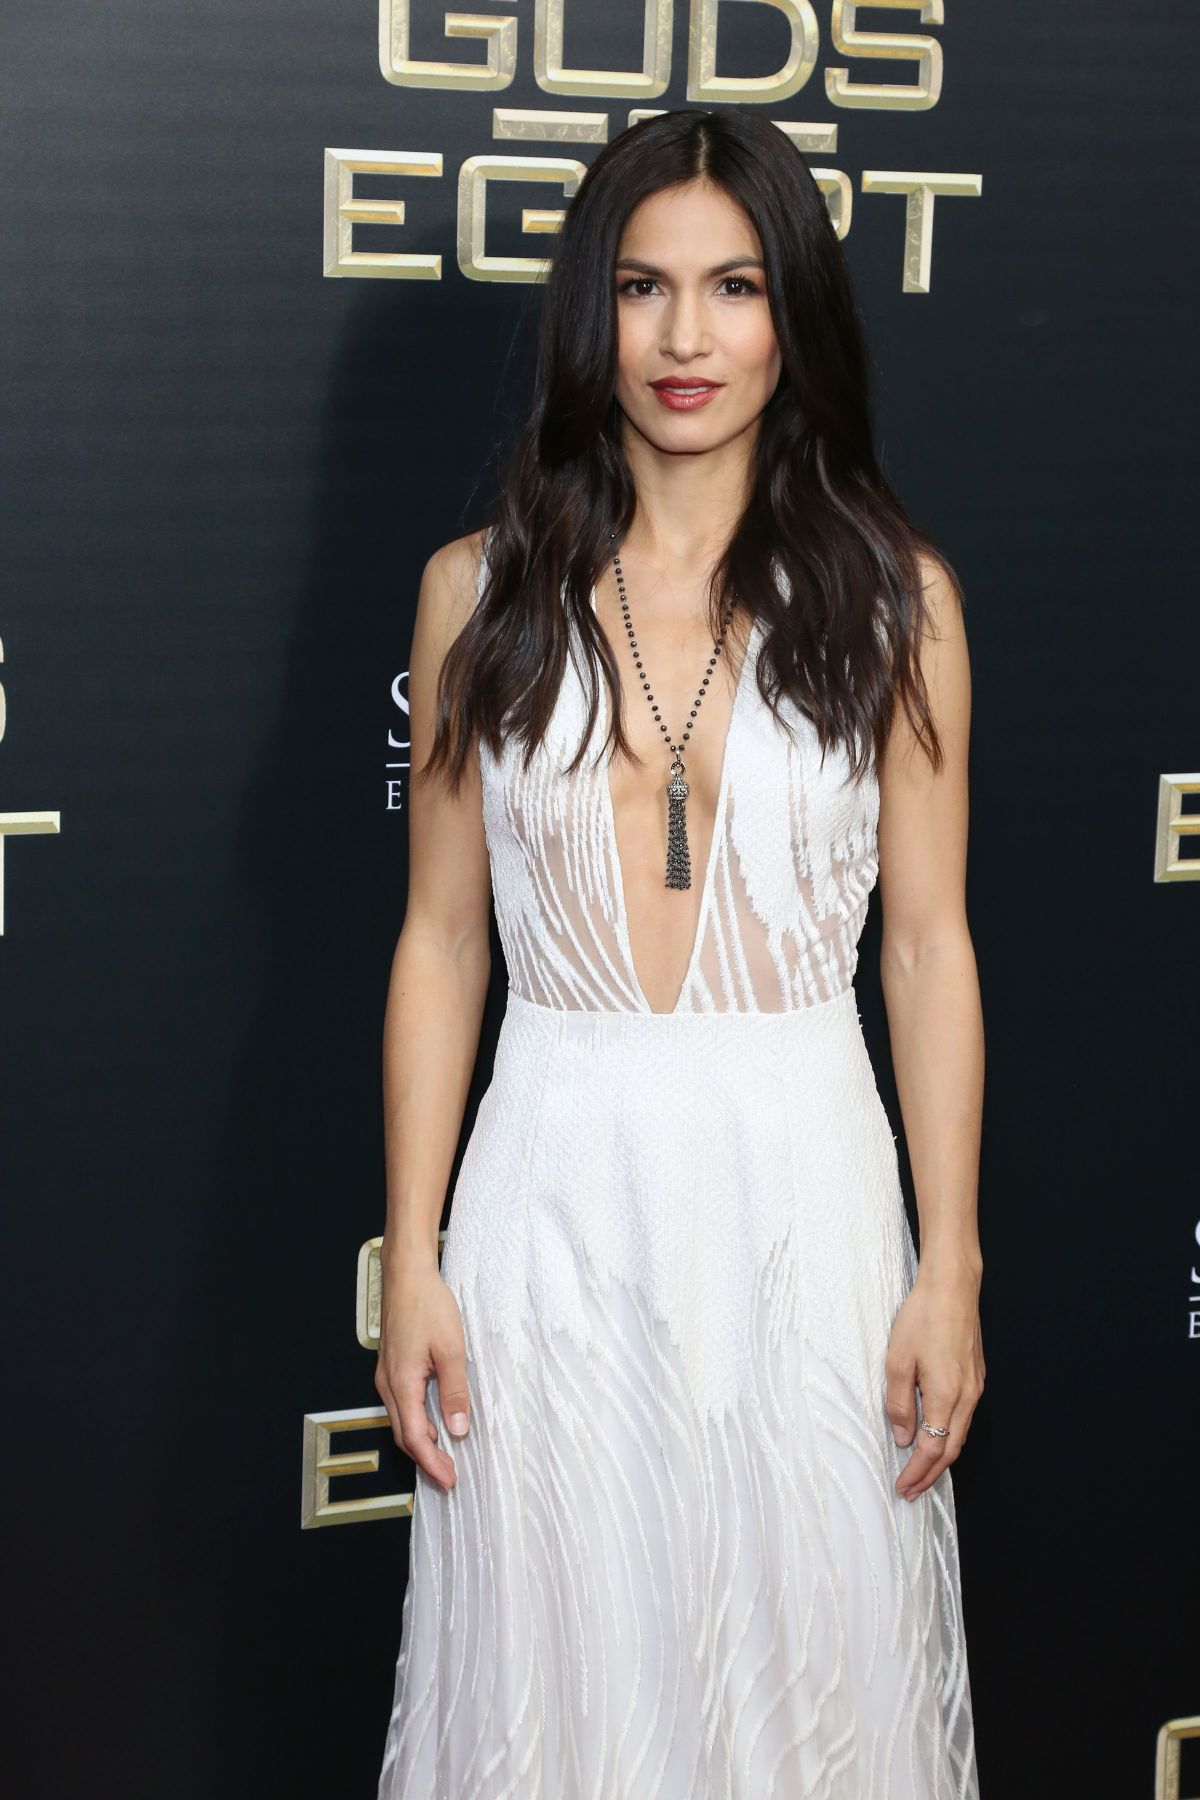 Amazing Elodie Yung Pictures & Backgrounds